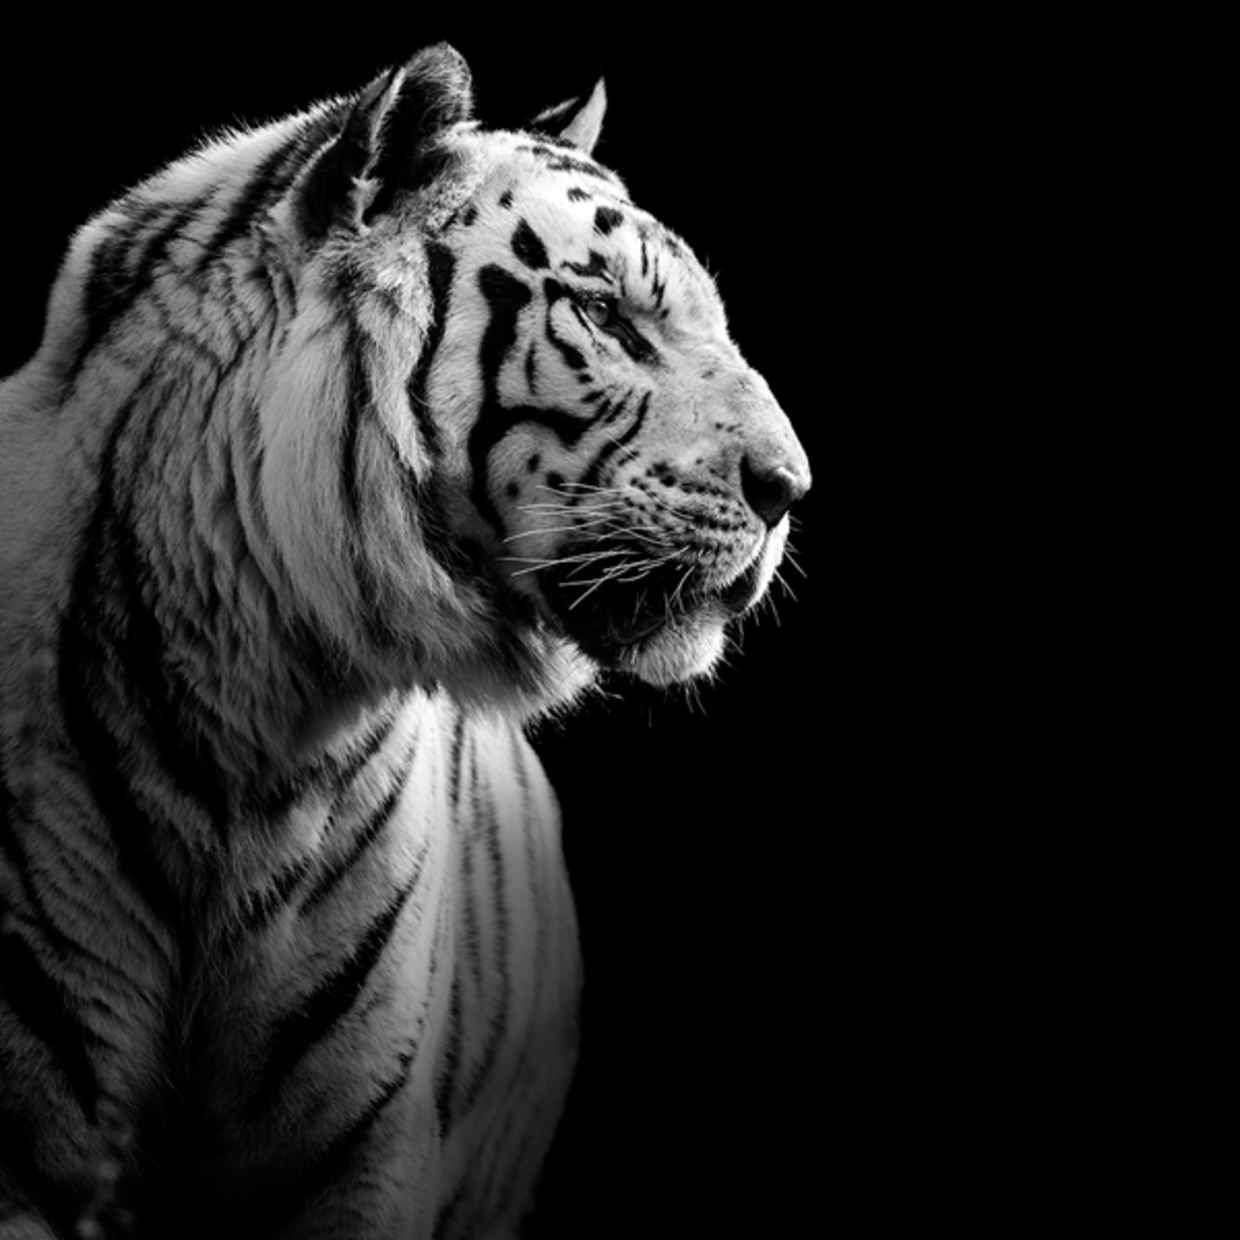 Amazing Black And White Animal Photography By Lukas Holas Tiger Images Tiger Wallpaper Snow Tiger